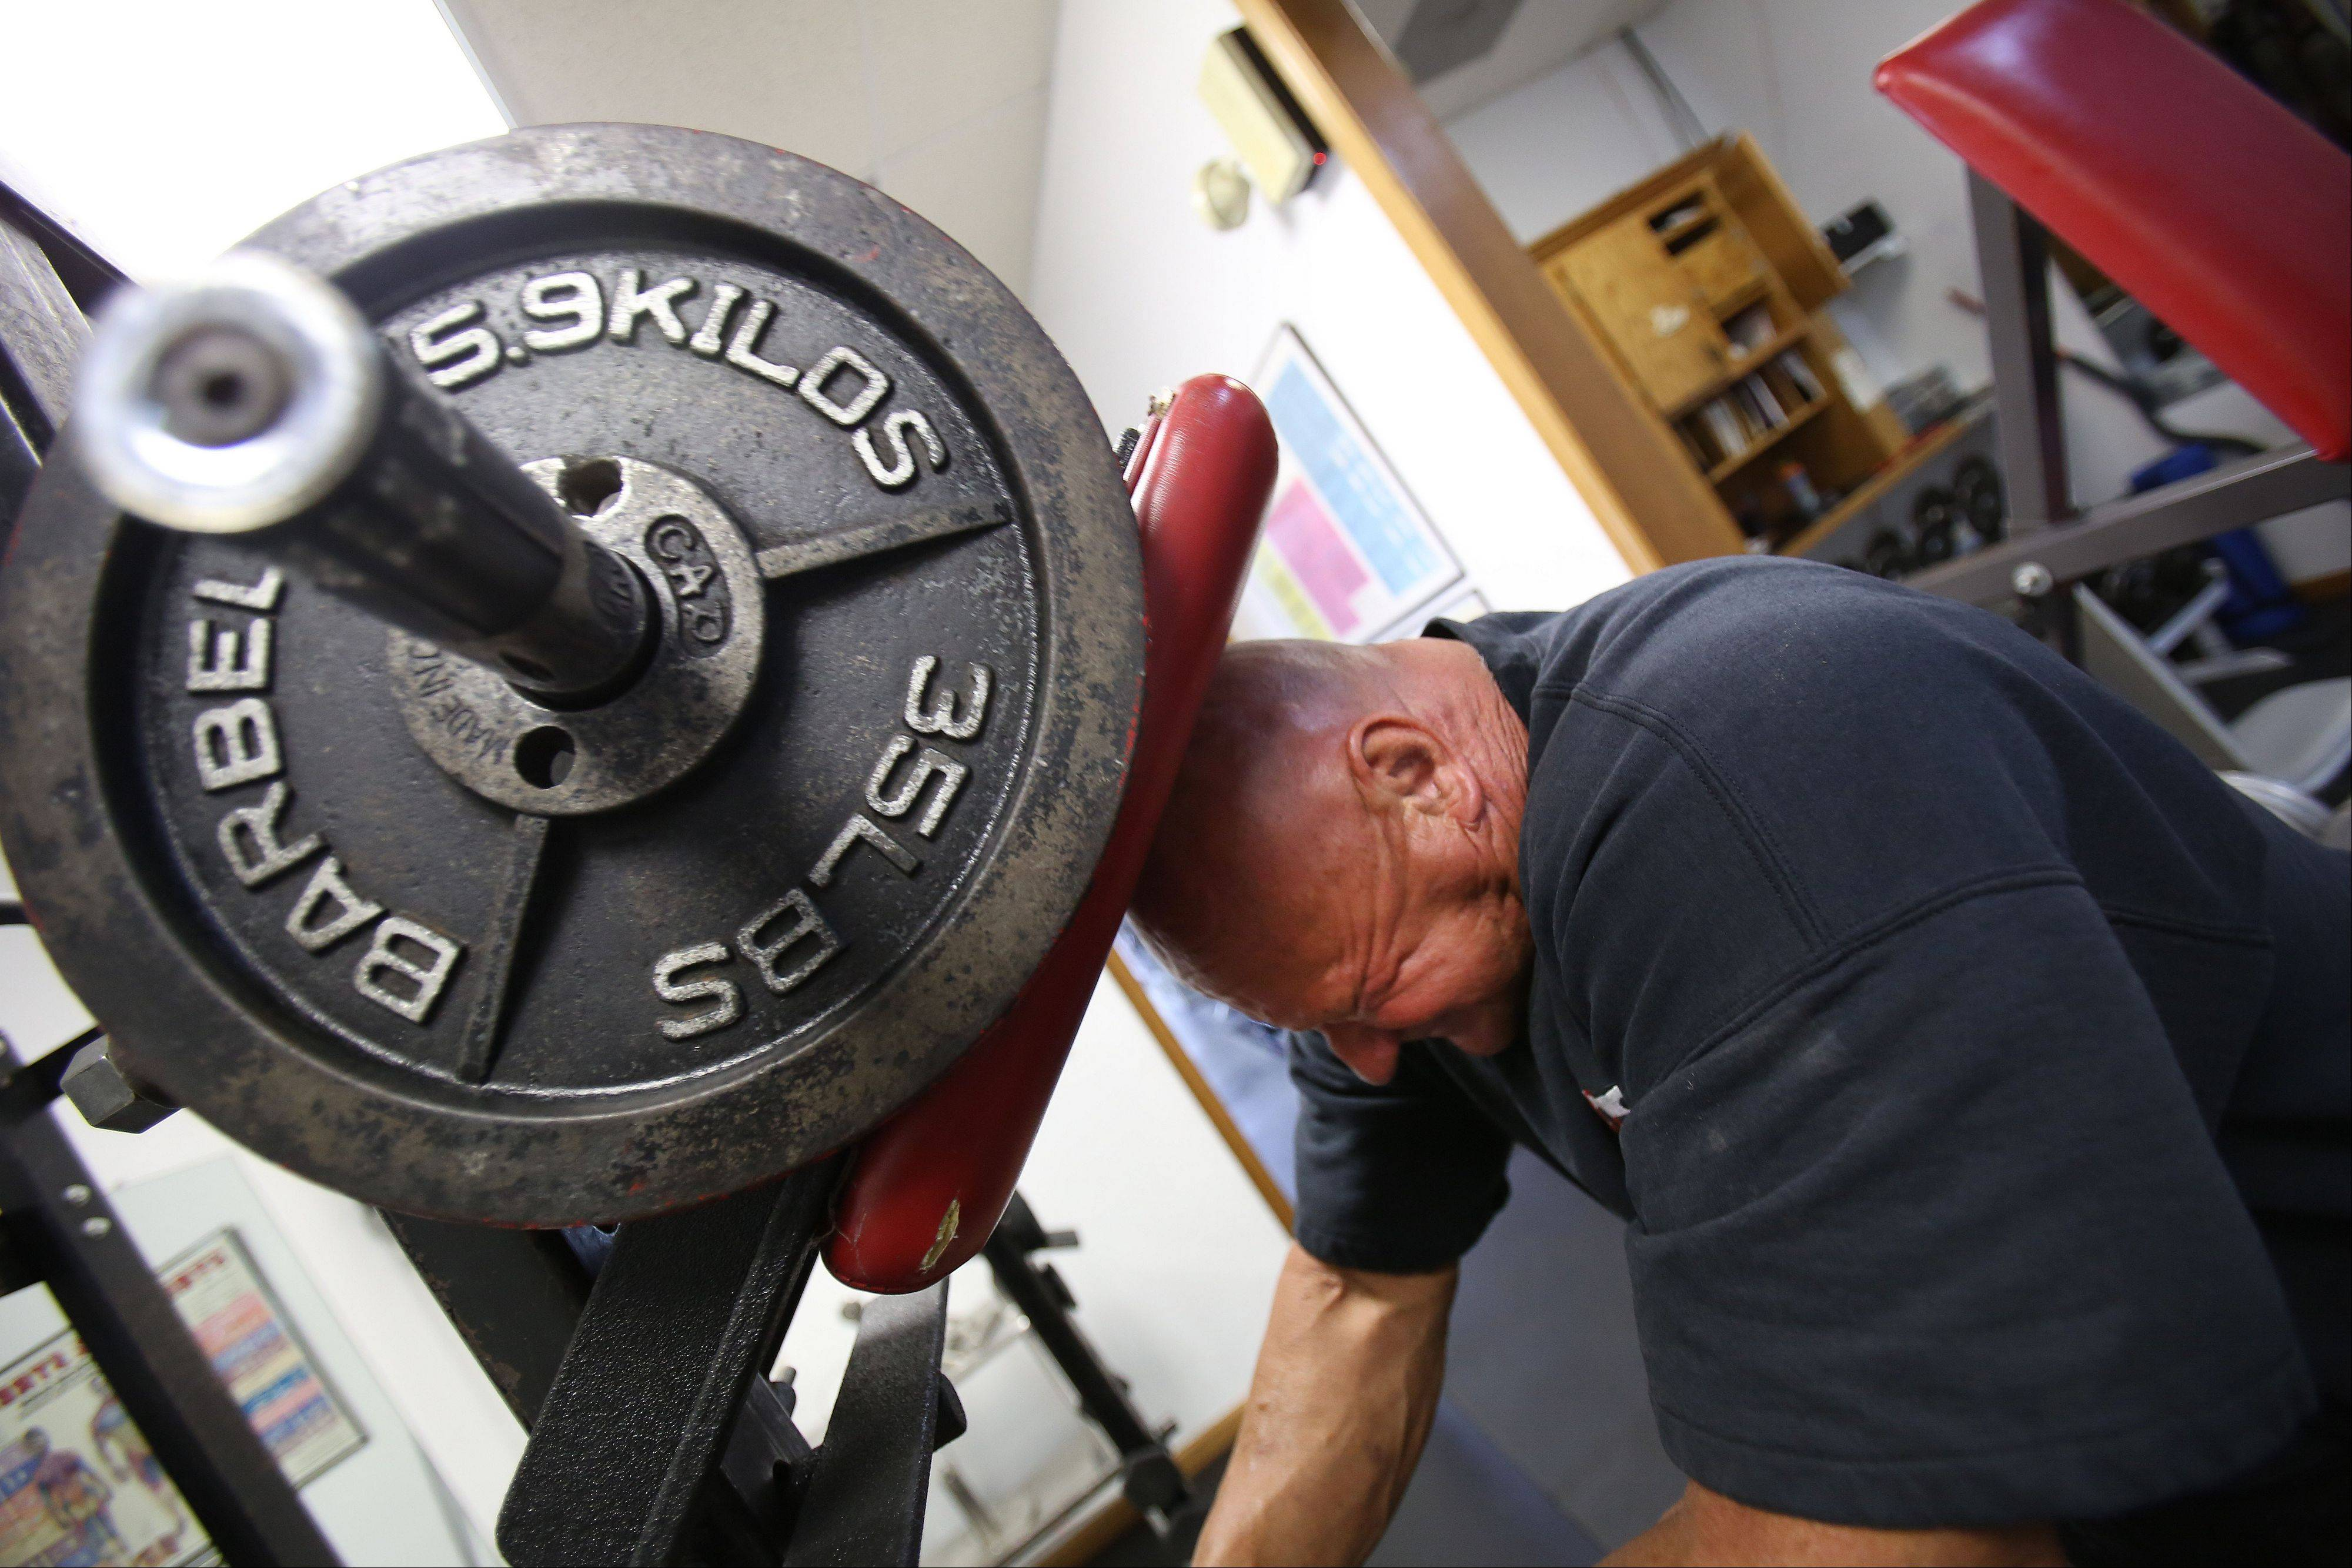 Alex Rothacker strengthens his neck on a machine he developed. He has developed several weightlifting variations.